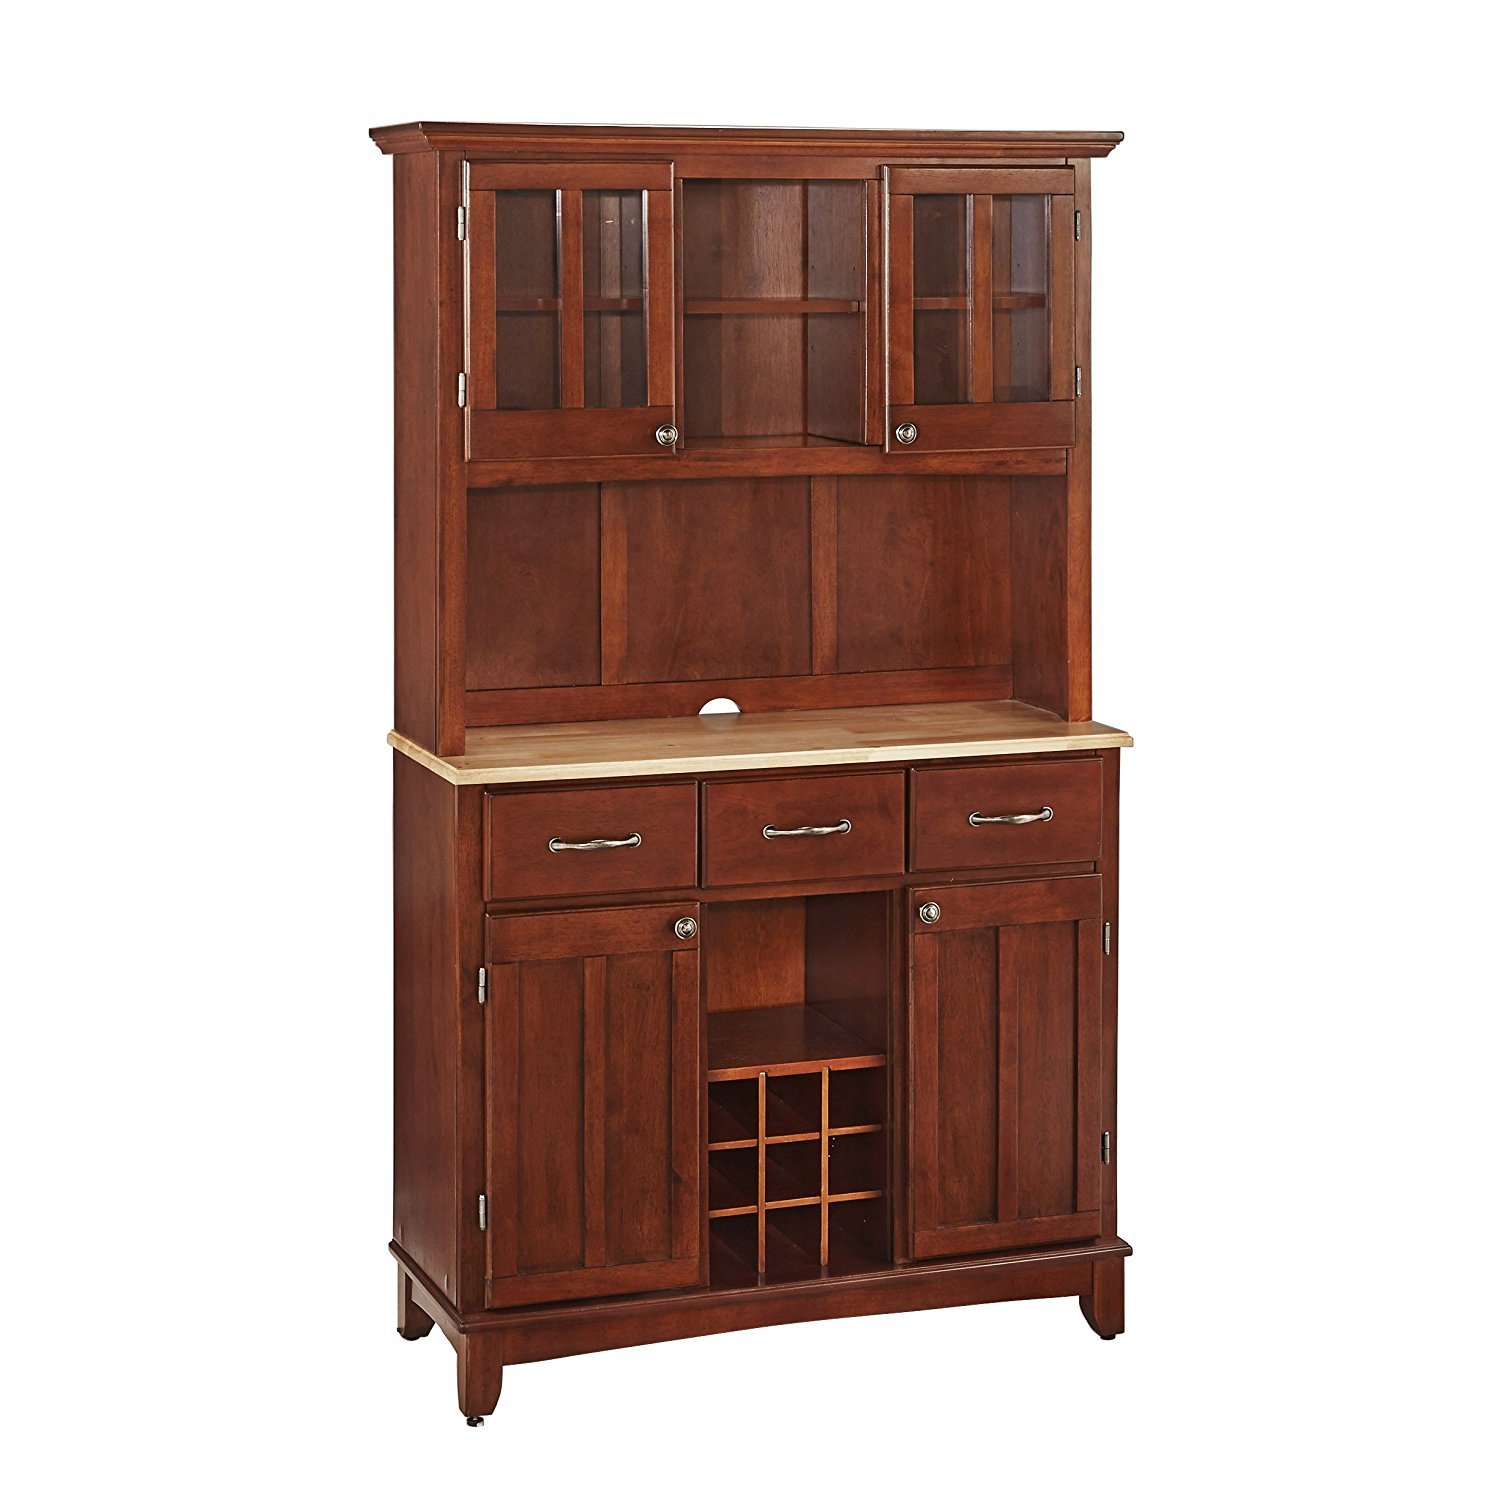 hutch kitchen furniture kitchen hutch furniture home furniture design 7993